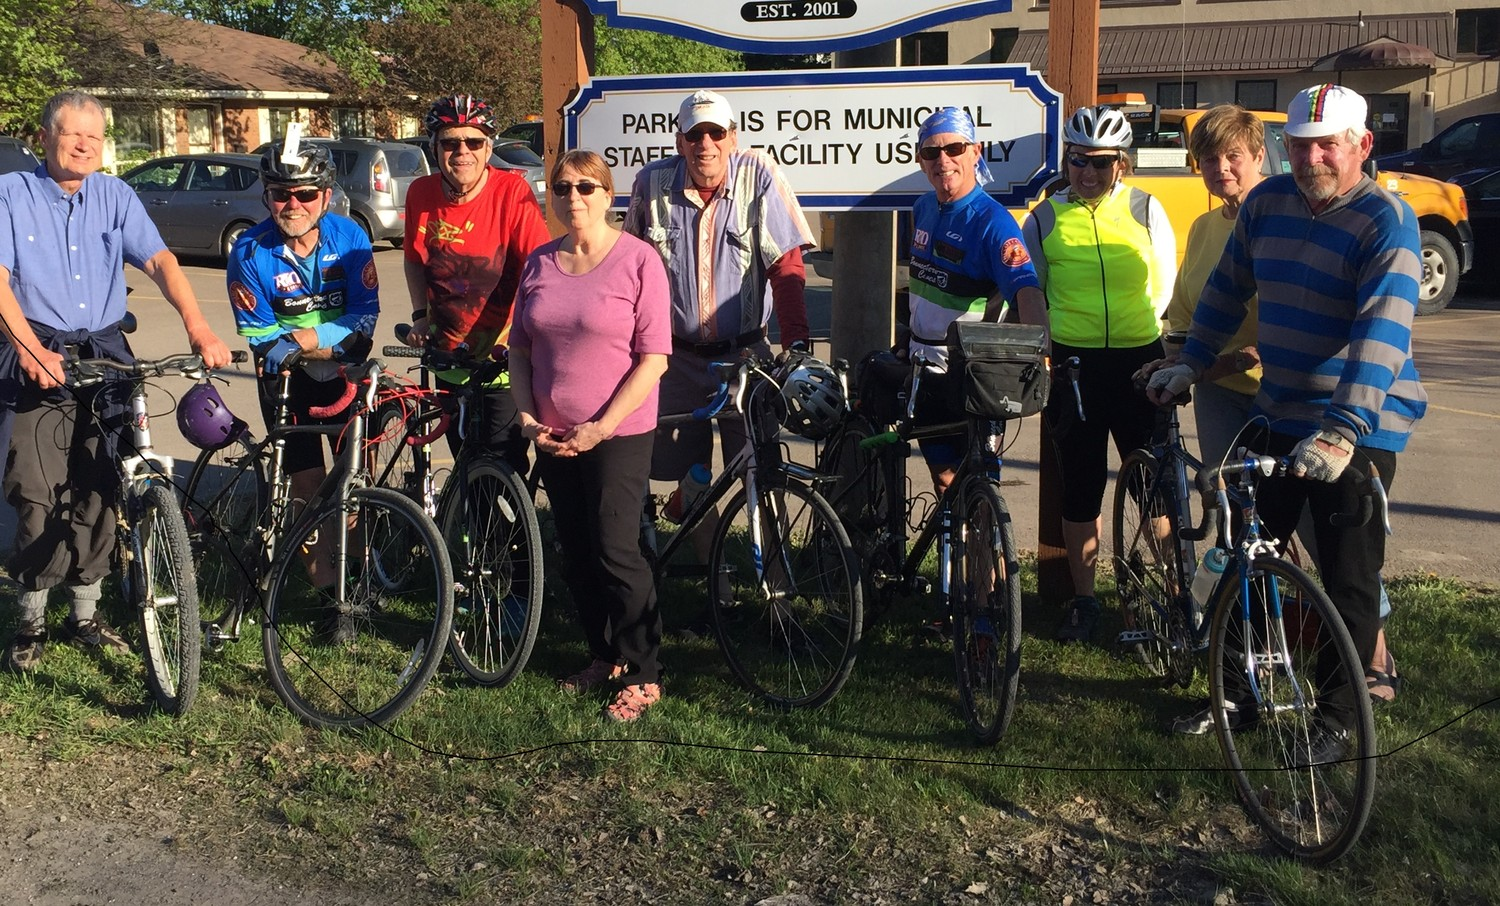 At the launch of the Renfrew County Seniors Active Transportation on May 17, 2018. From left: Ole Hendrickson (Morrison's Island), Chris Hinsperger (Eganville), Andy Kalnins (McNab), Kathy Eisner (Golden Lake), Ish Theilheimer (Golden Lake), Bob Peltzer (Bonnechere Valley), Debbie Fiebig (Admaston), Pat Krose (Whitewater), Dave Fleming (Cobden)